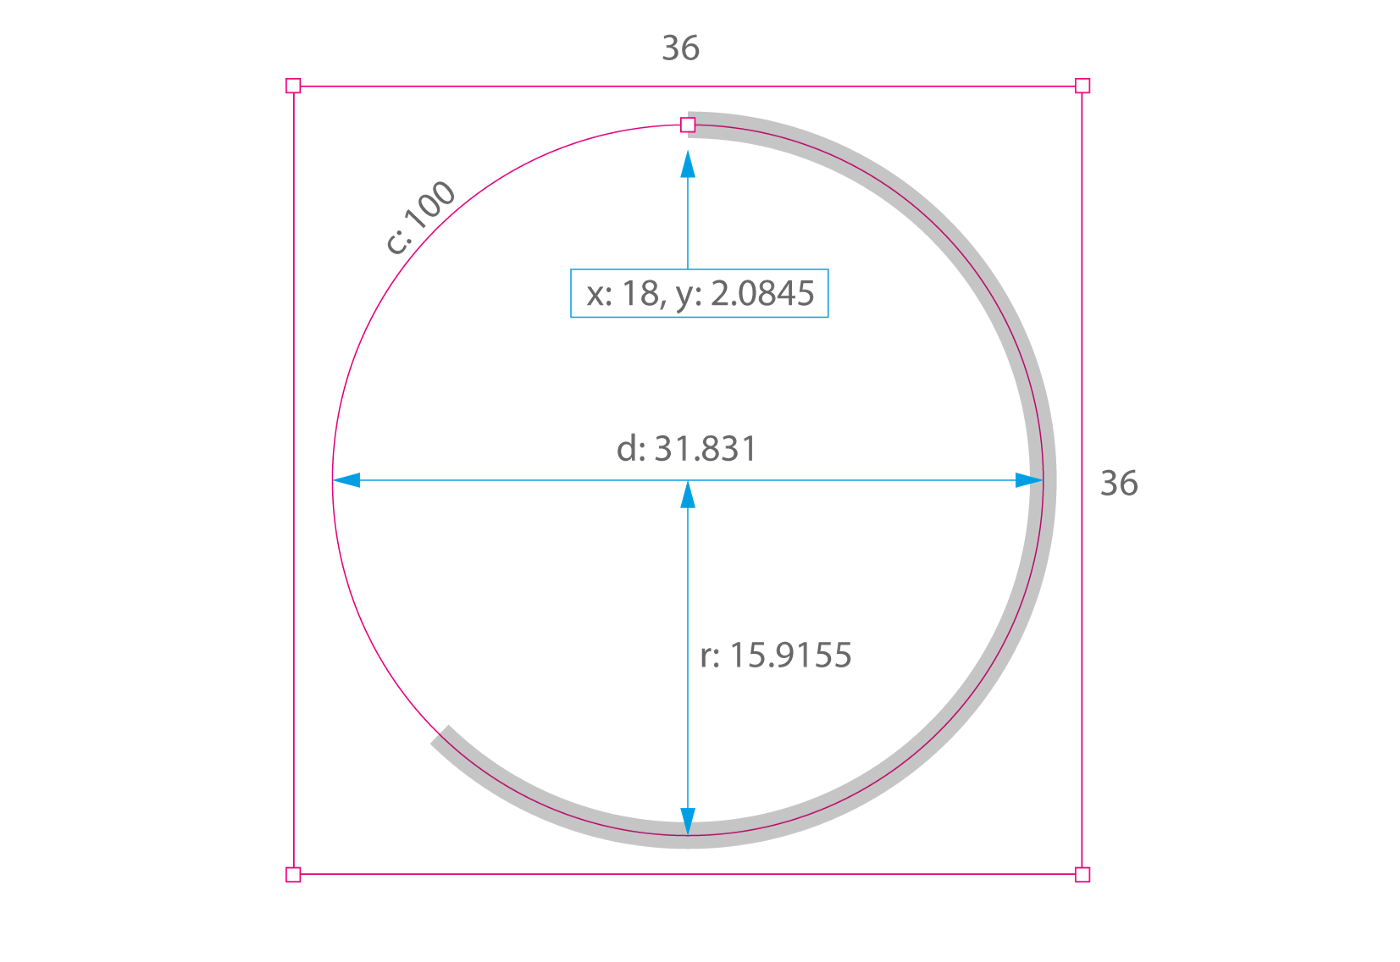 How to code a responsive circular percentage chart with SVG and CSS